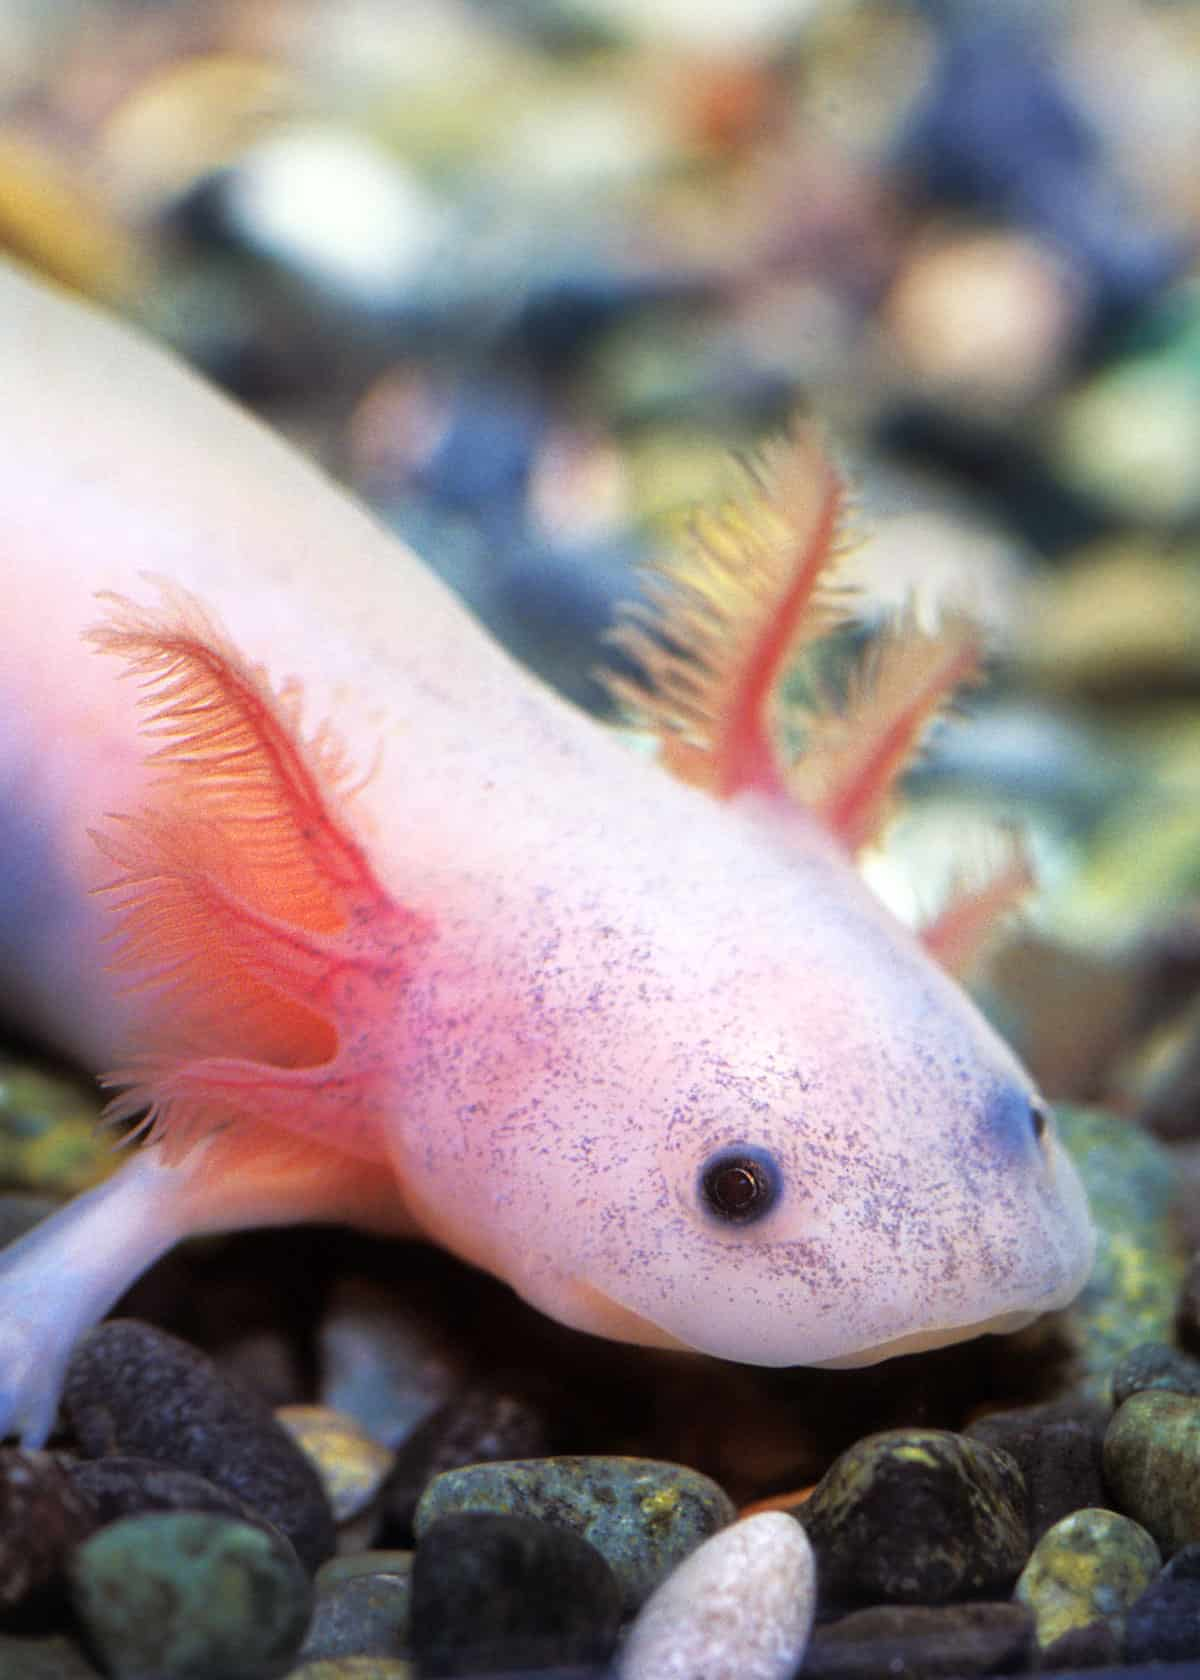 68 Axolotl Facts: Ultimate Guide to the Adorable Mexican